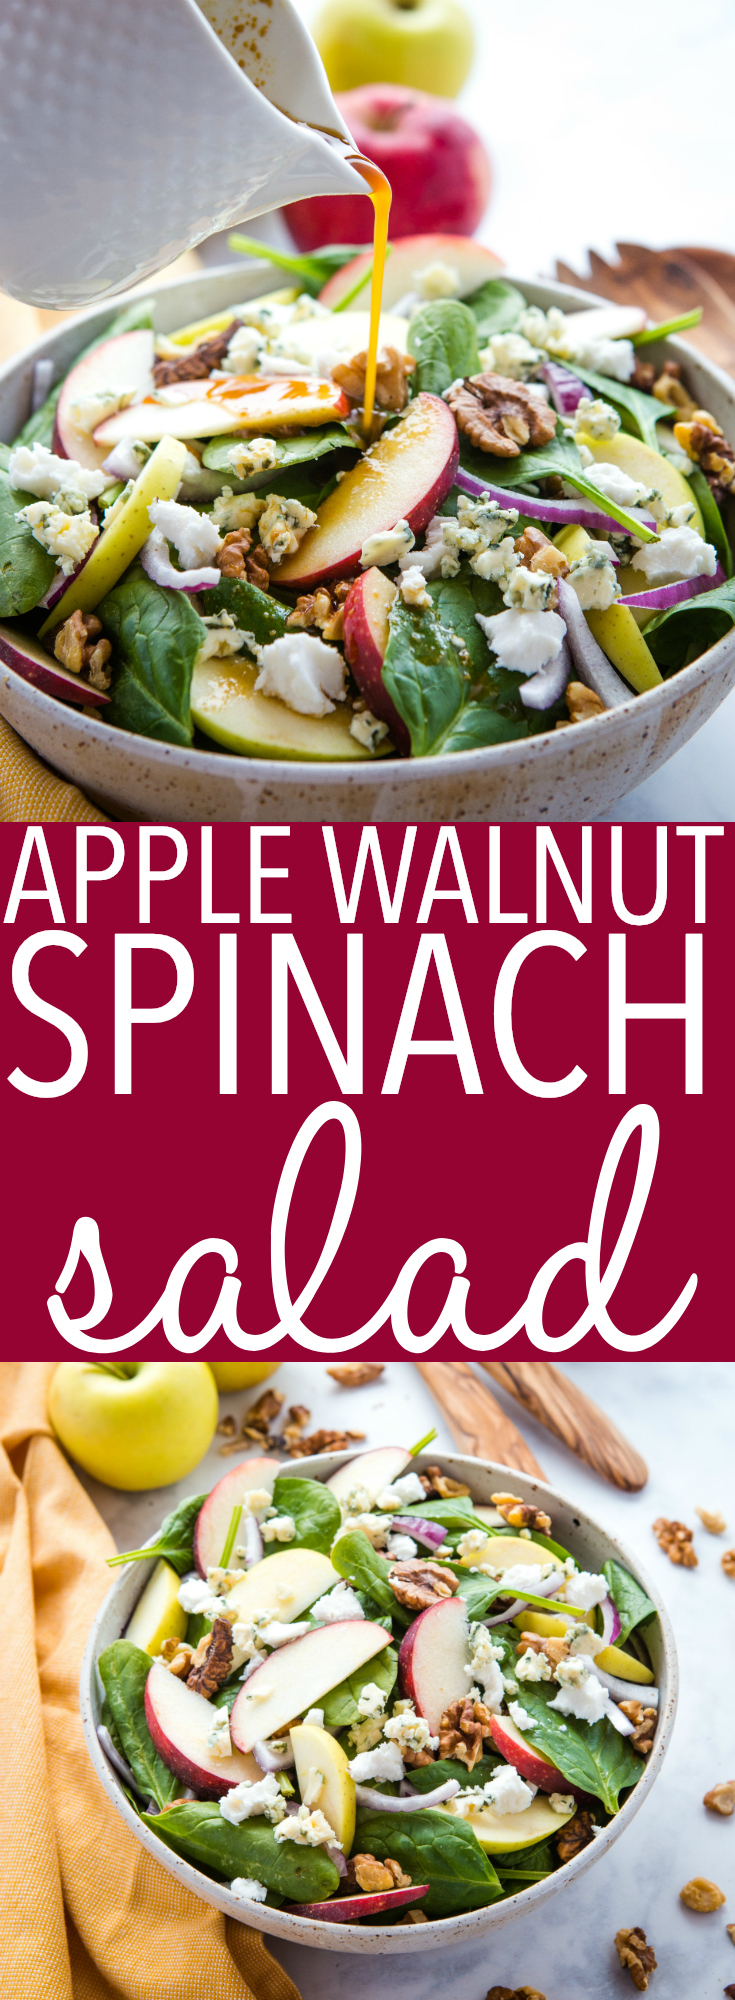 This Apple Walnut Spinach Salad with Balsamic Vinaigrette Dressing is a delicious winter salad recipe that's packed with healthy greens, fruit, nuts, sweet onions, sharp blue cheese and buttery goat cheese, all topped with a sweet balsamic salad dressing! Recipe from thebusybaker.ca! #winter #salad #goatcheese #bluecheese #apples #green #eattherainbow #healthy #lunch #mealprep #balsamic #homemadesaladdressing via @busybakerblog